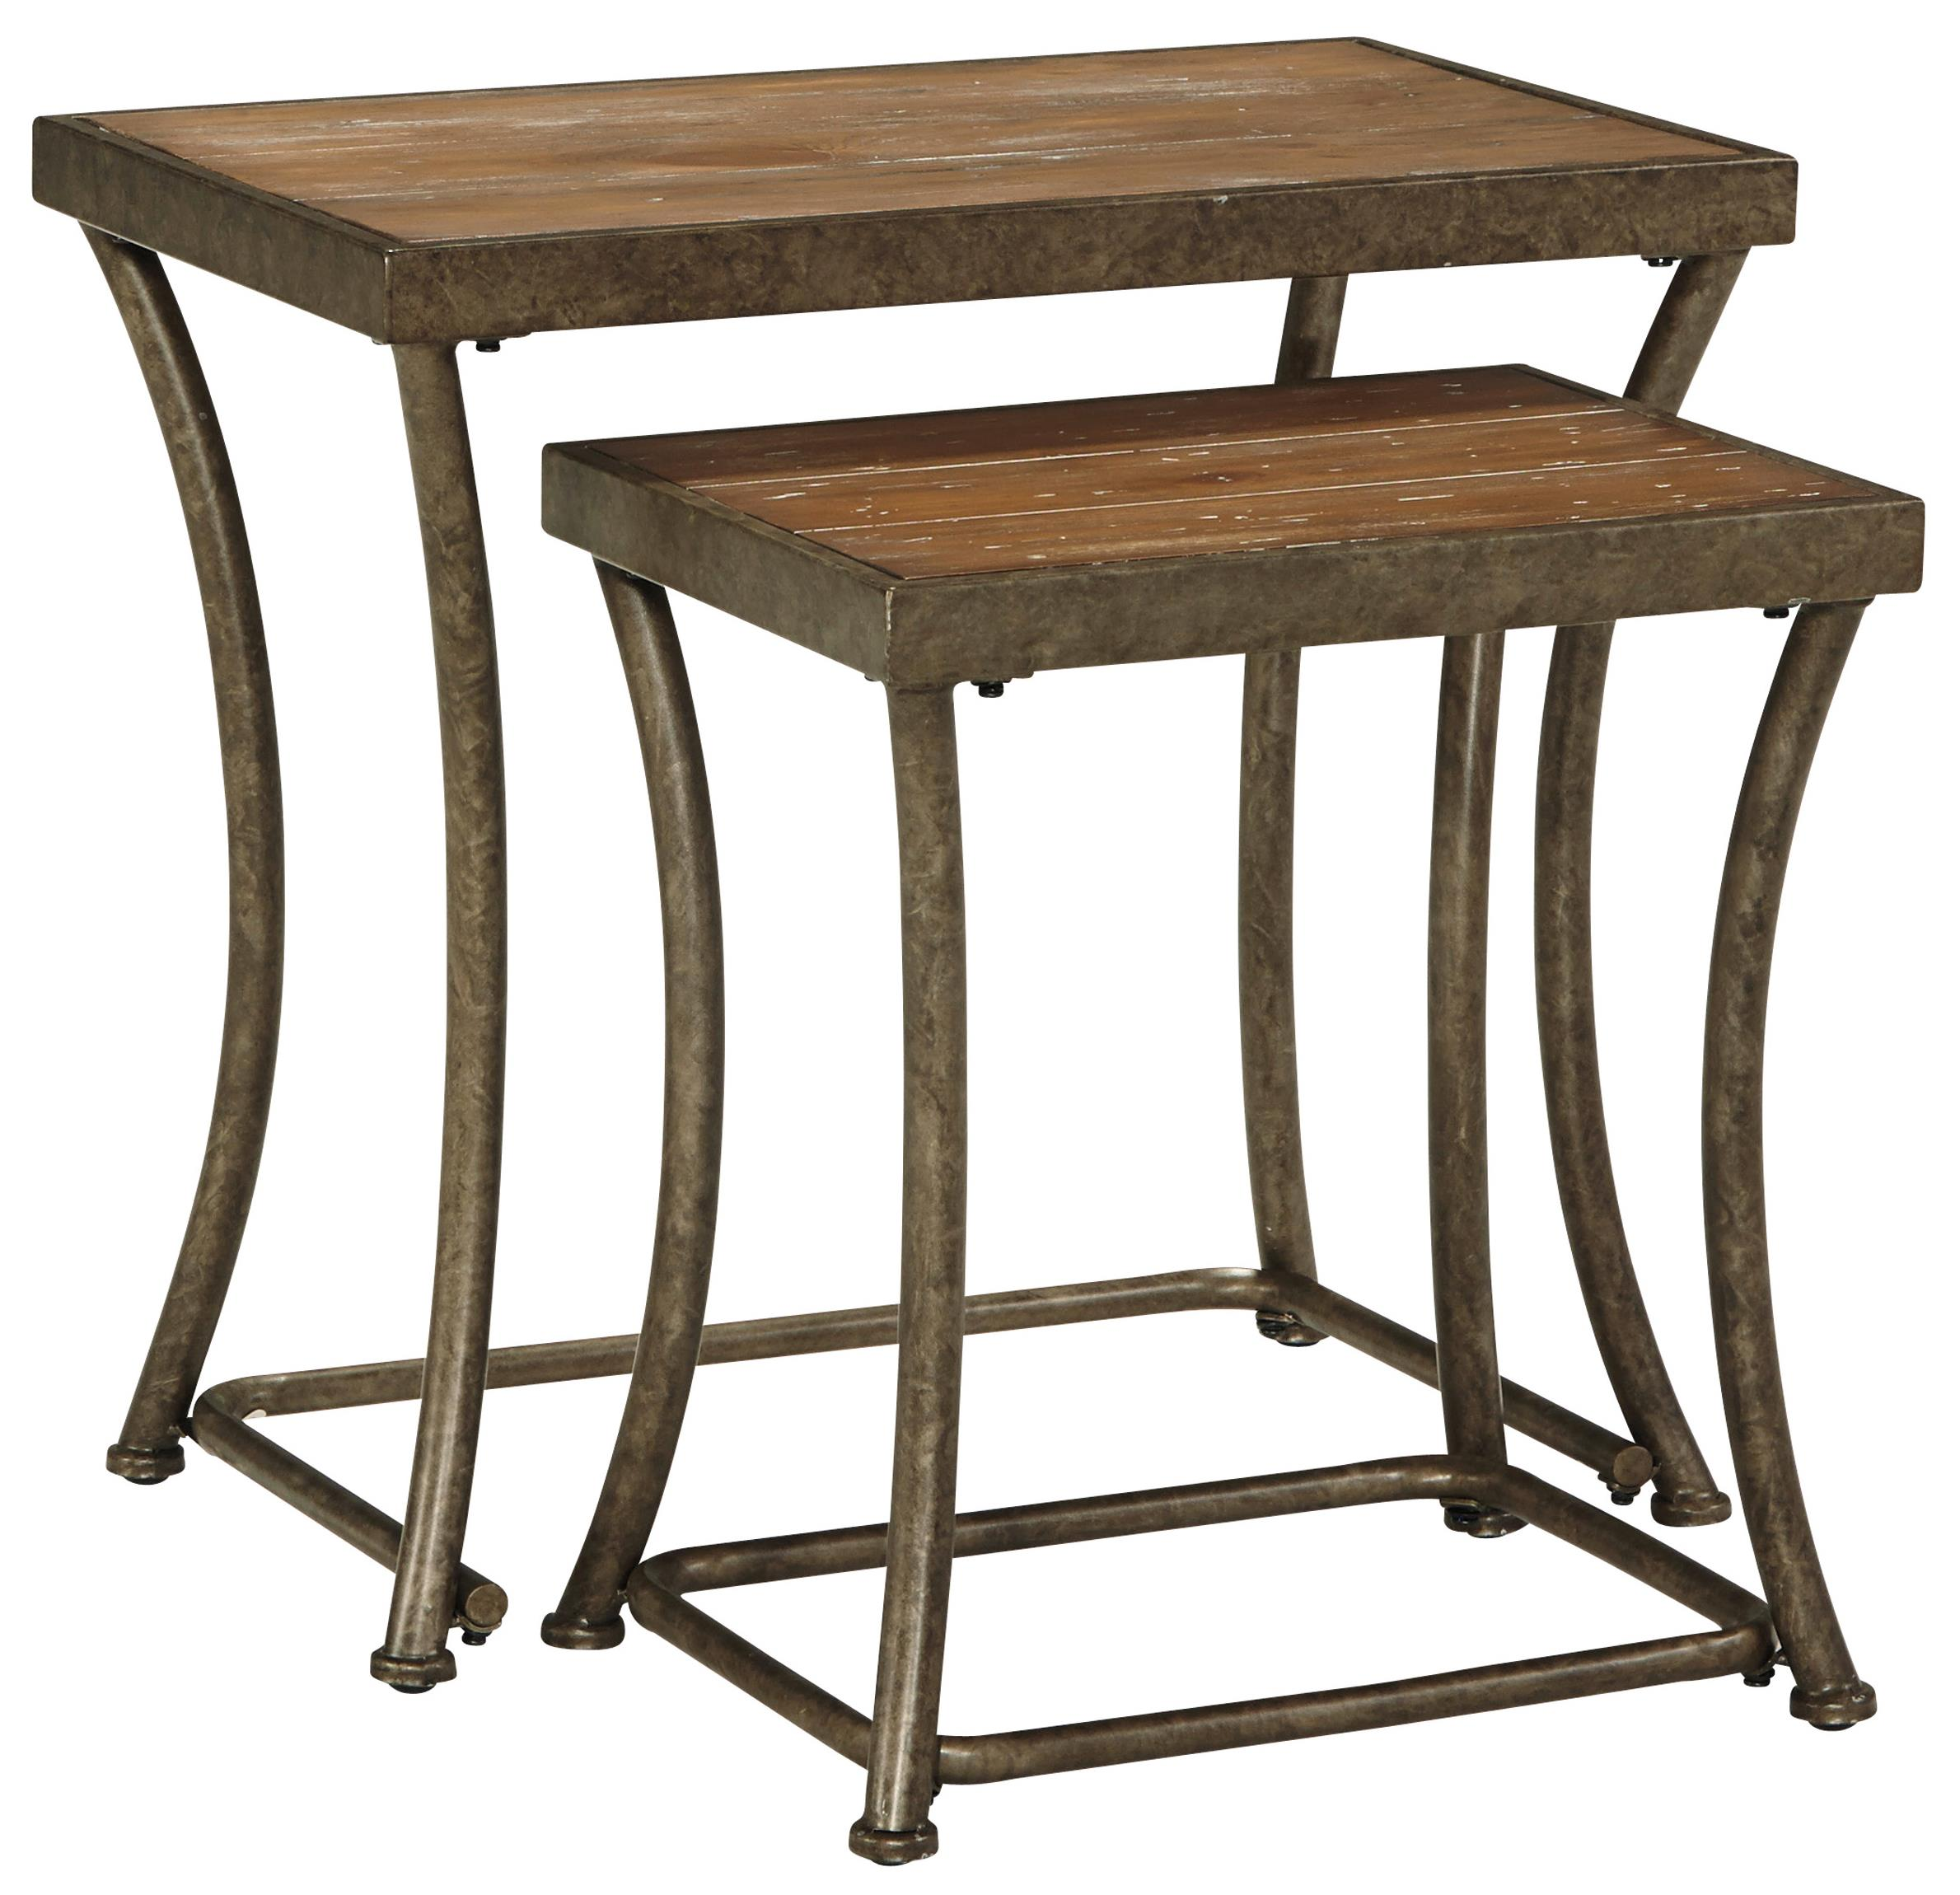 Ashley Signature Design Nartina Rustic Metal Nesting End Tables With Distressed Pine Tables Tops